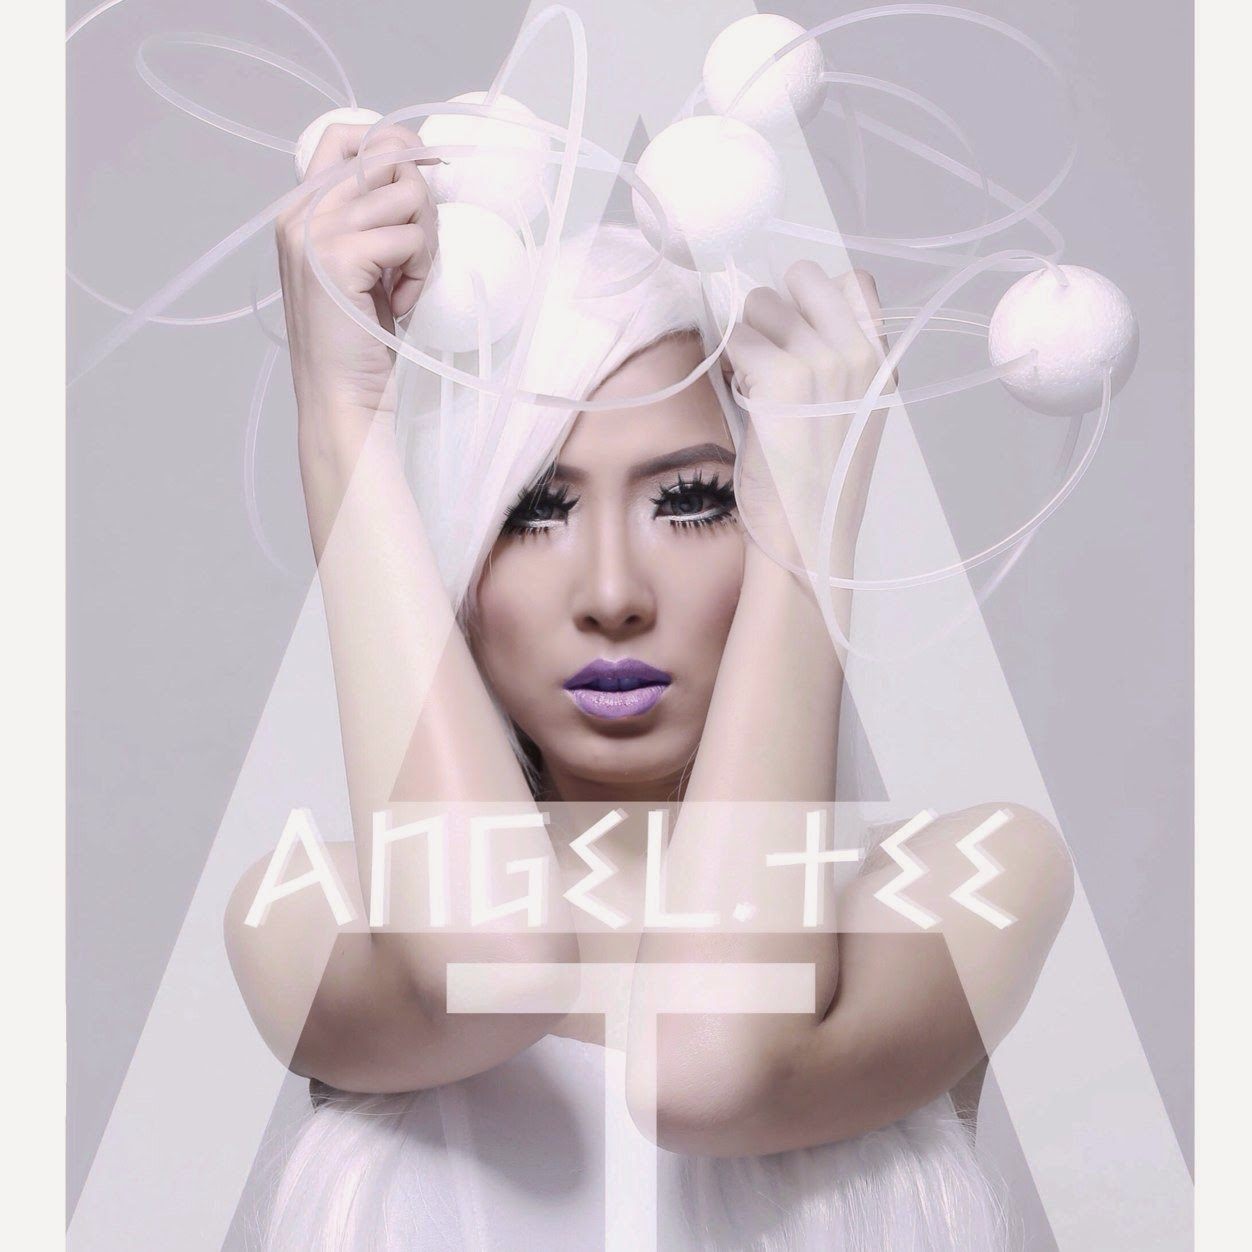 AngelTee / AT 7Icons [image by @Angelatee57]